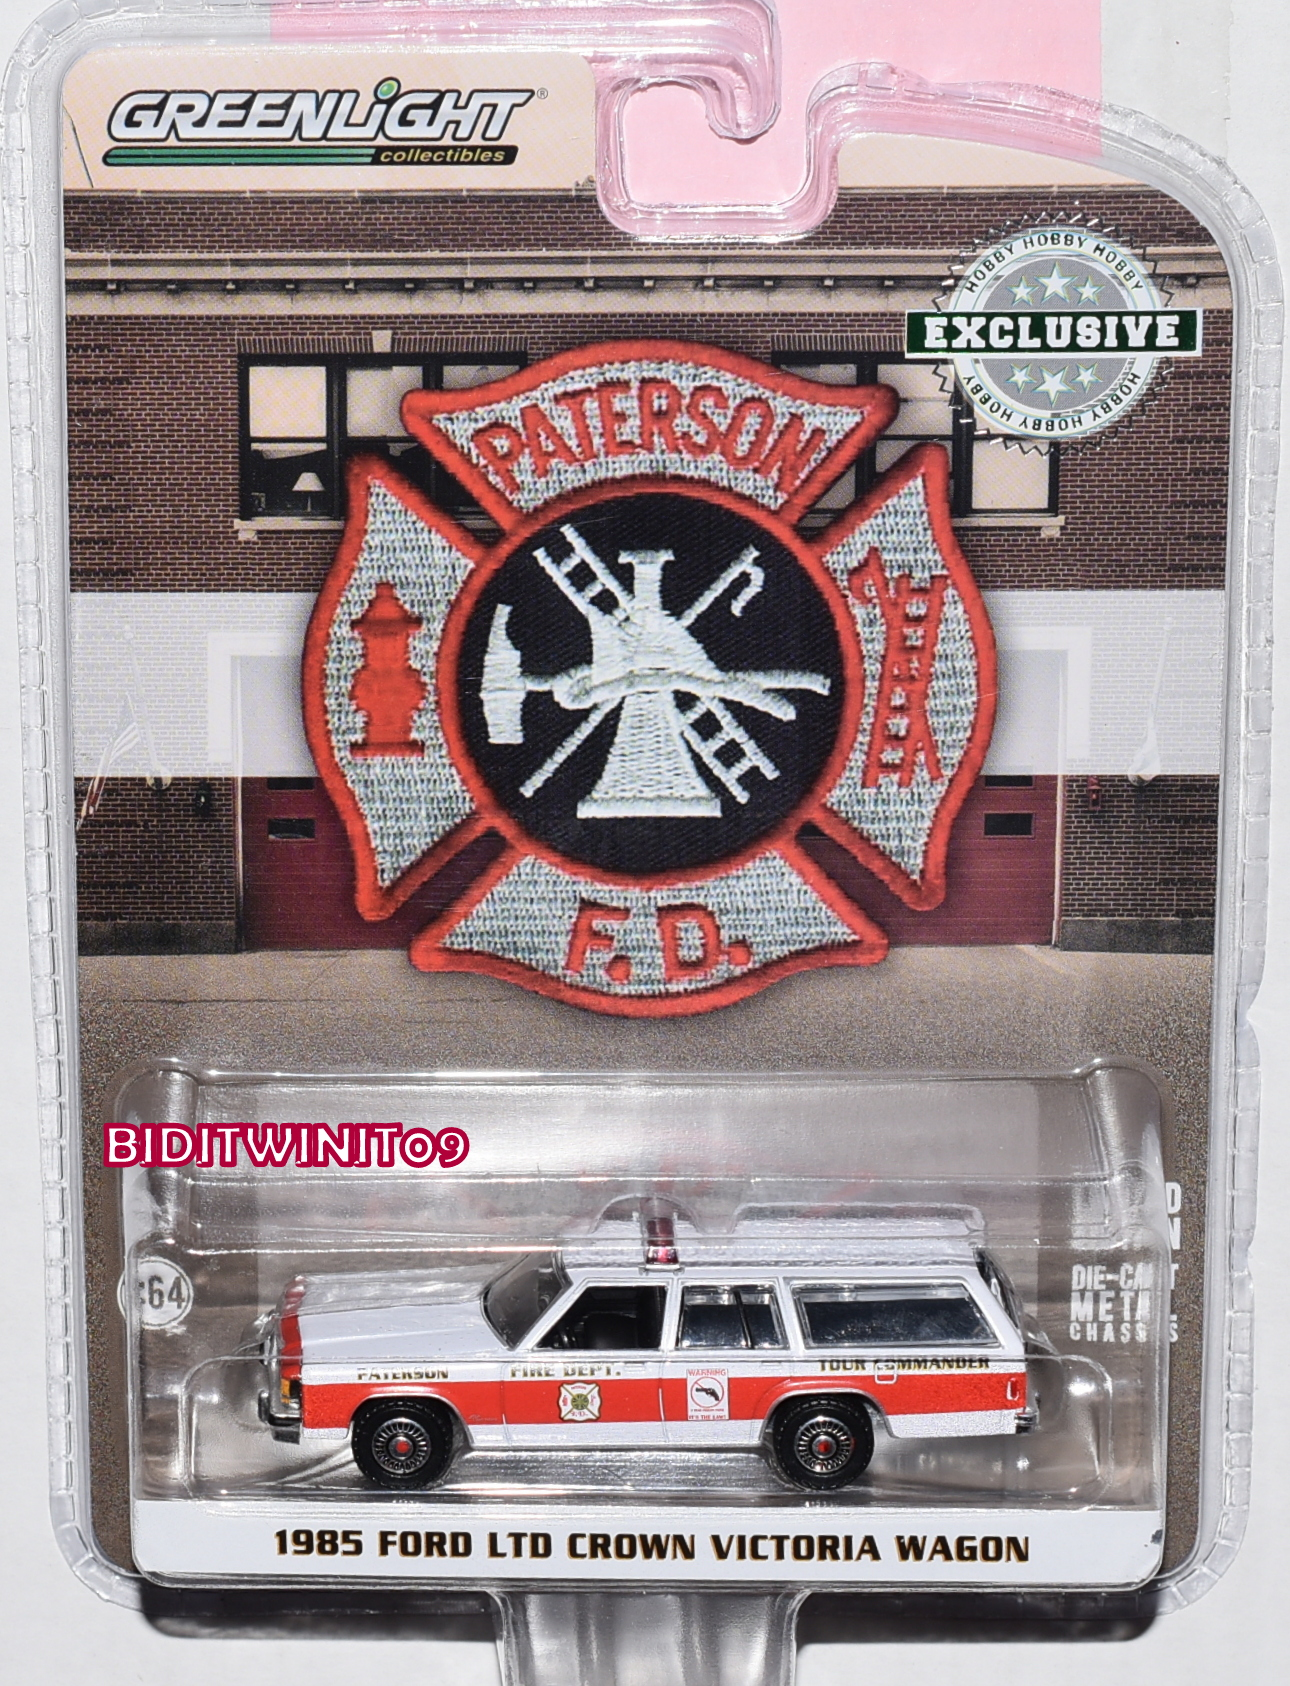 GREENLIGHT HOBBY EXC. 1985 FORD LTD CROWN VICTORIA WAGON - PATERSON